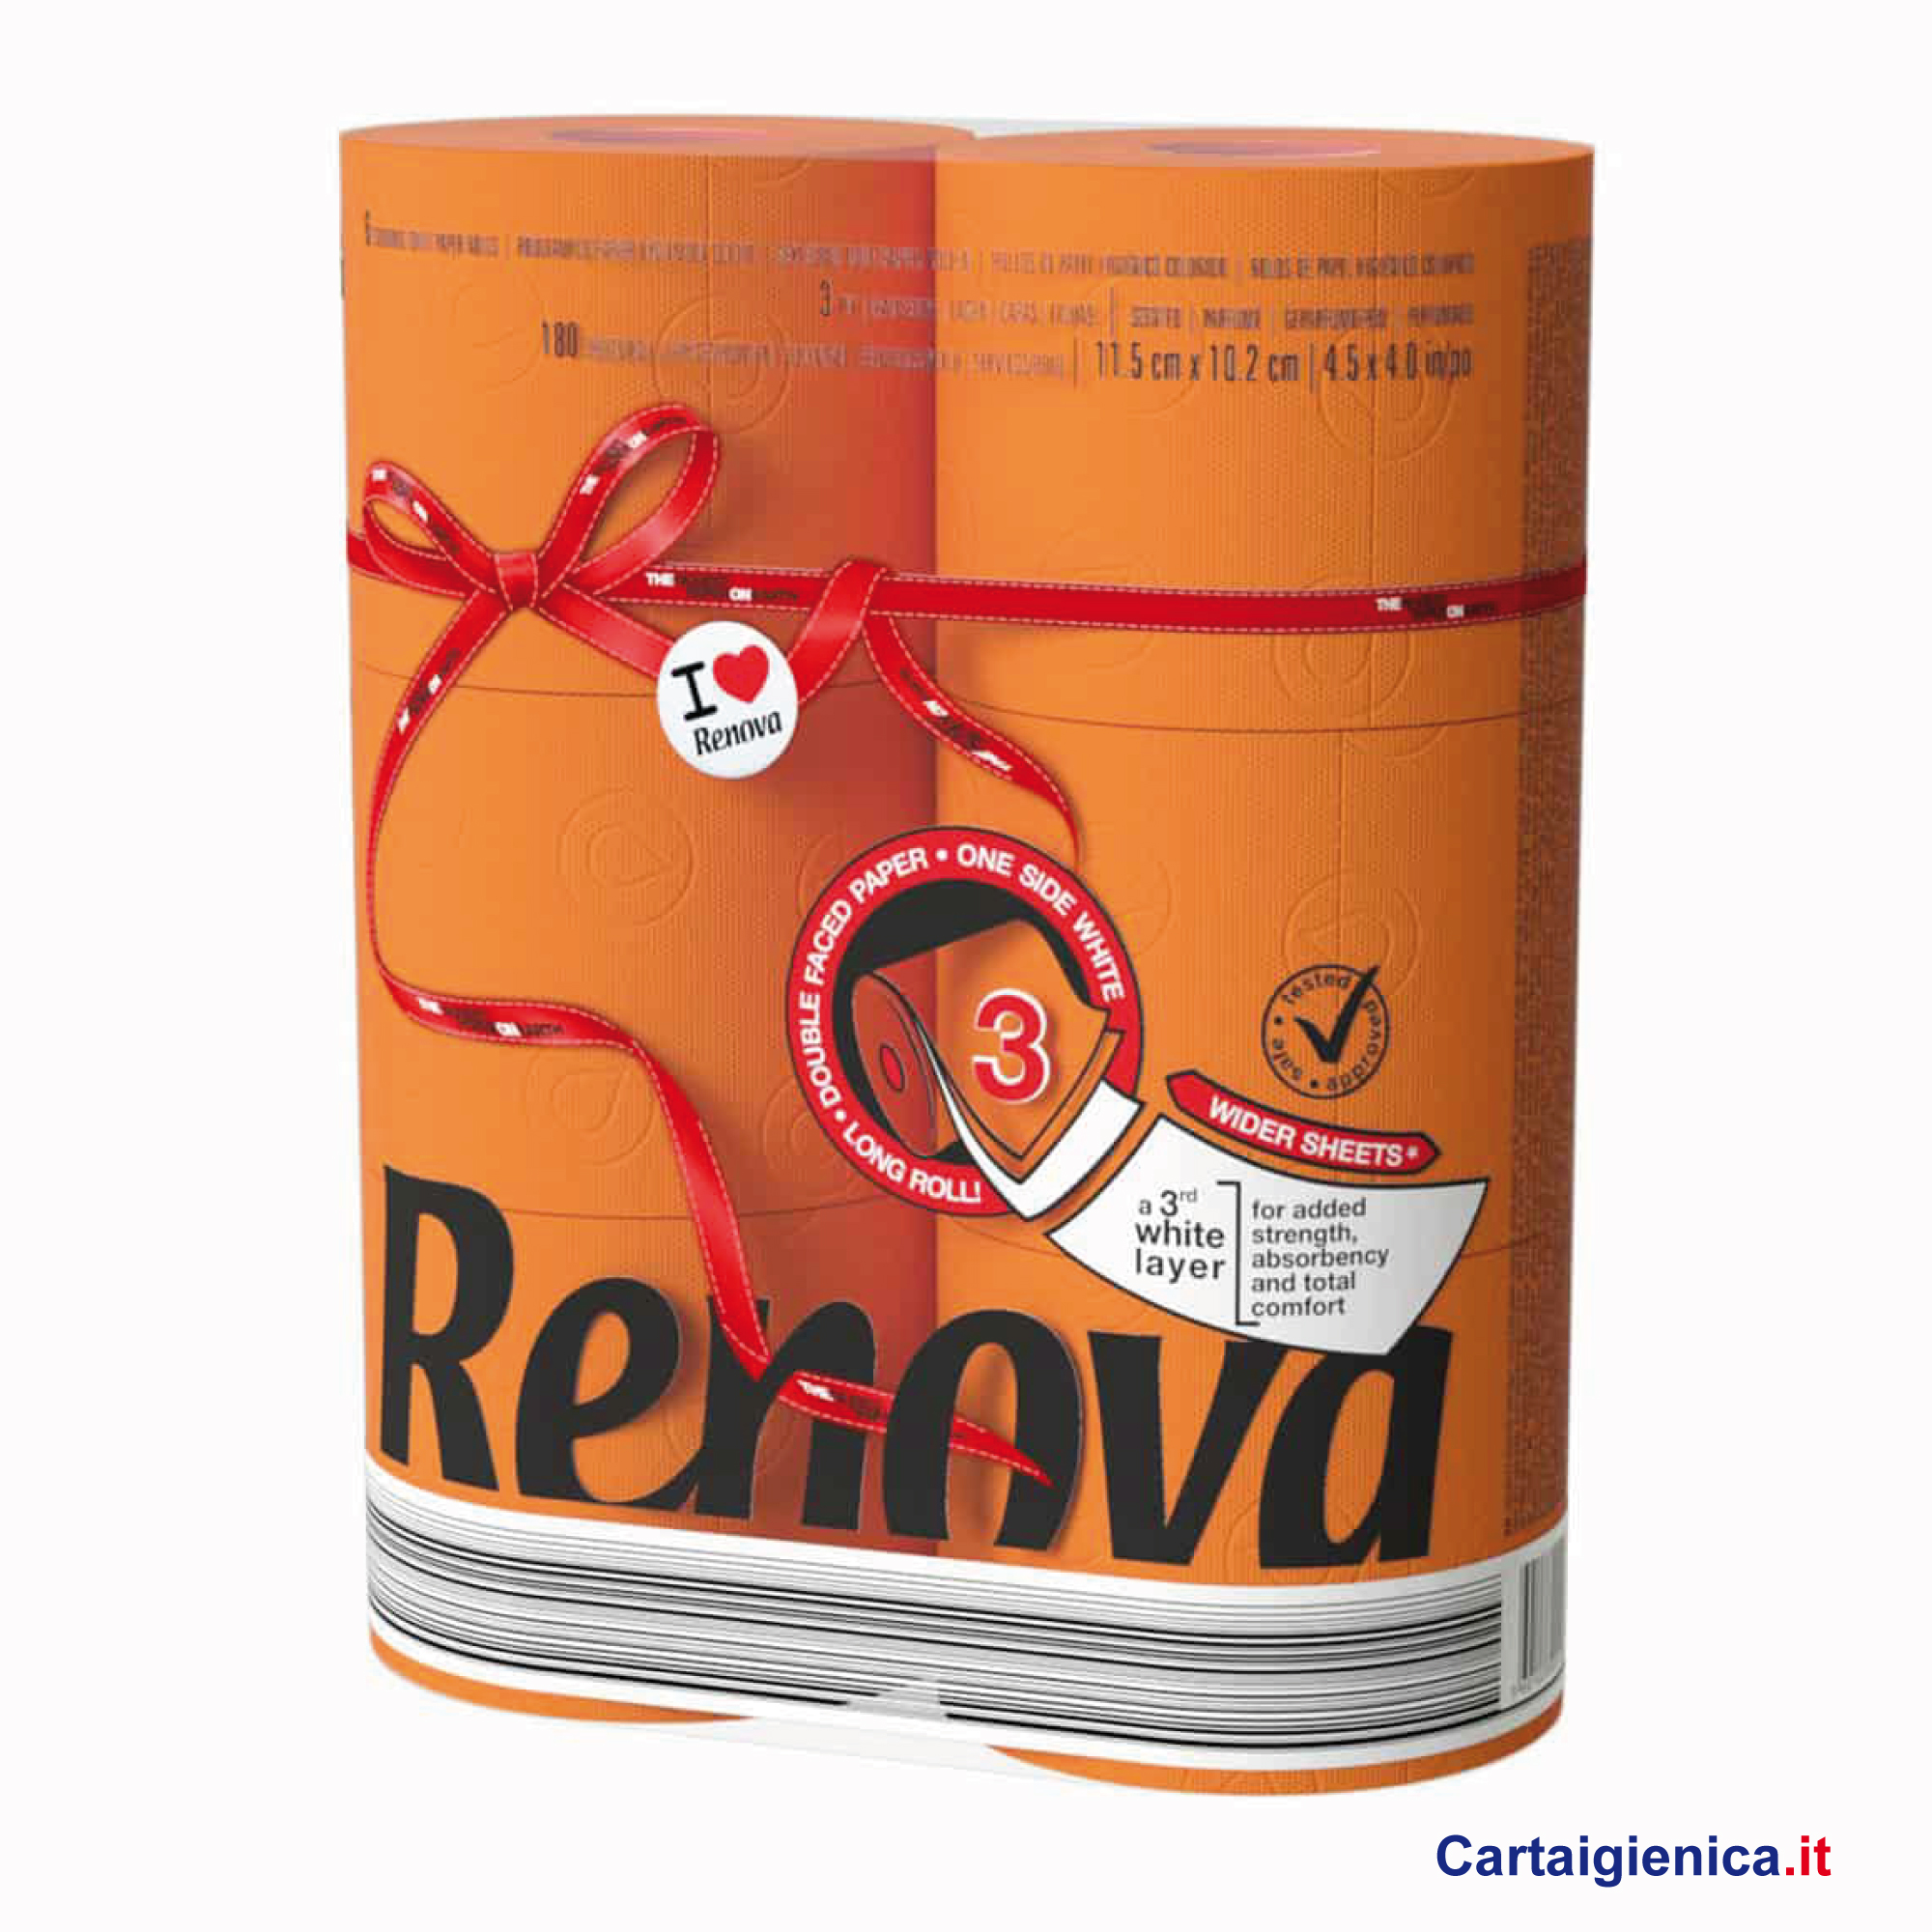 renova carta igienica colorata arancio 6 rotoli cartaigienica.it